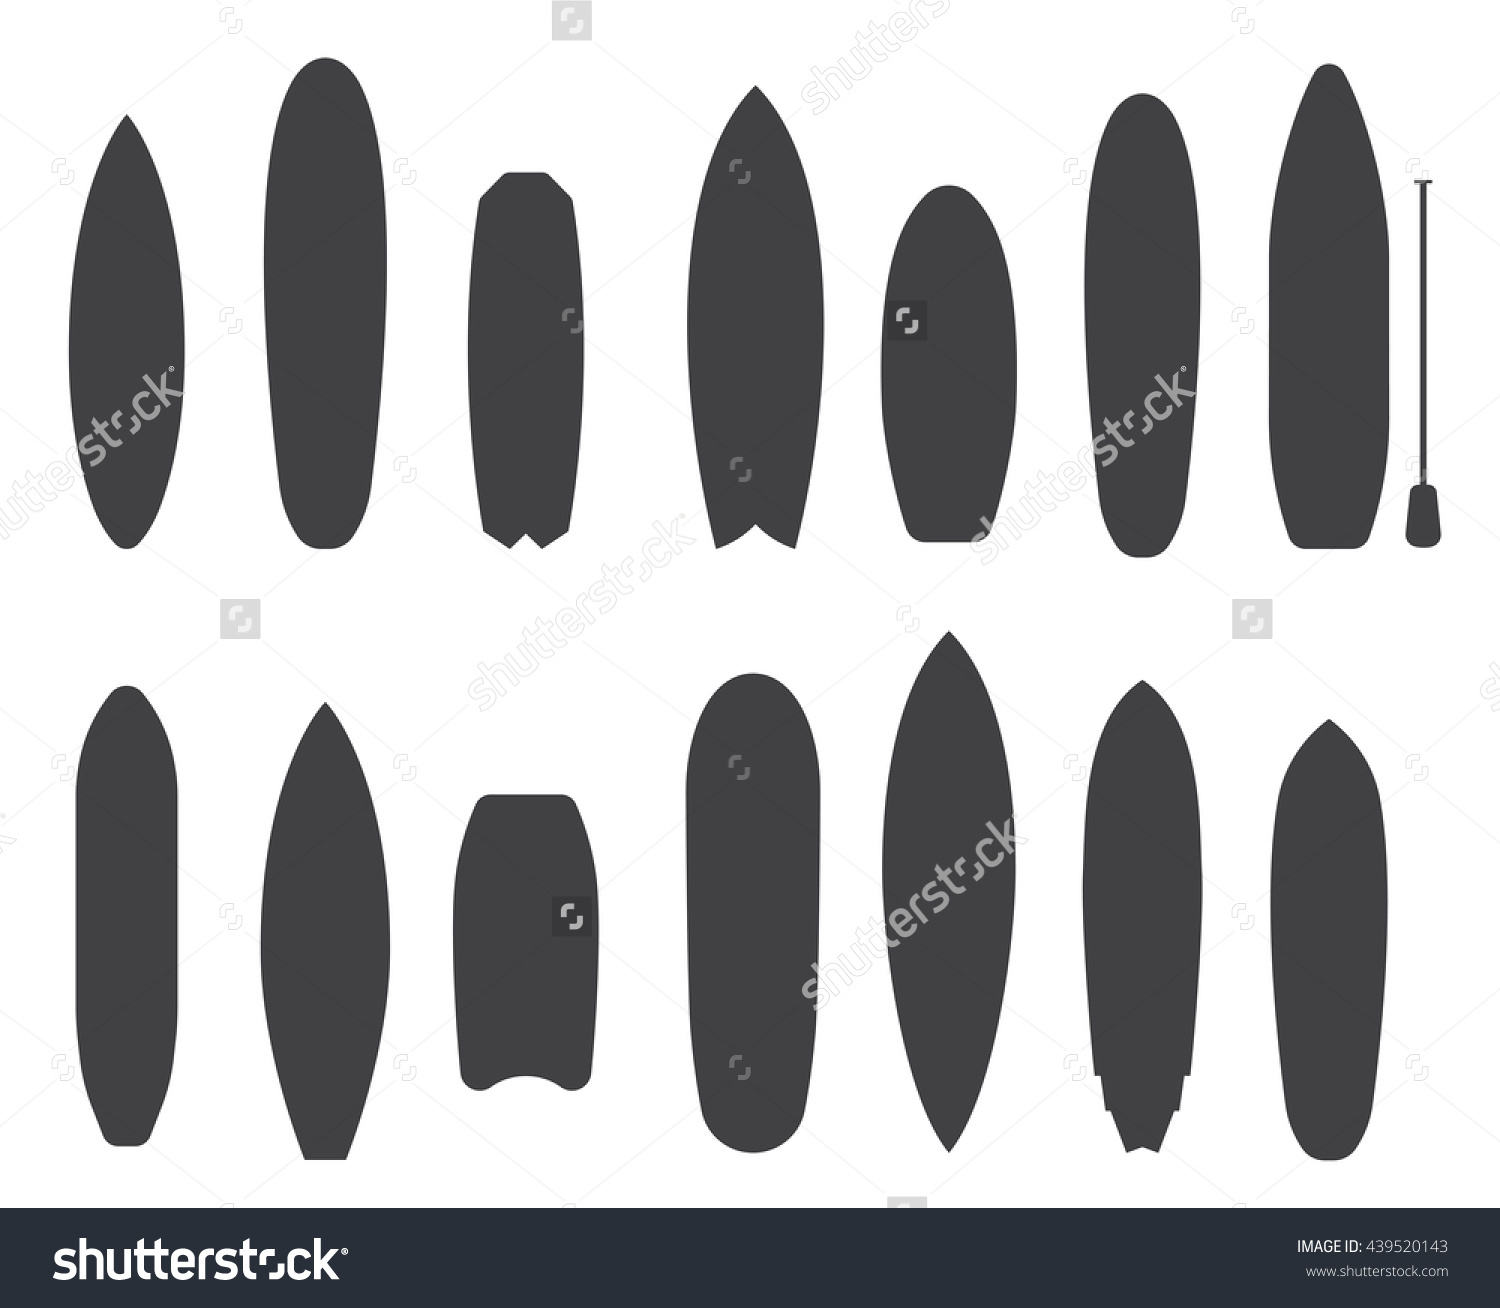 Outline Surfboard Collection Flat Design Vector Stock Vector.